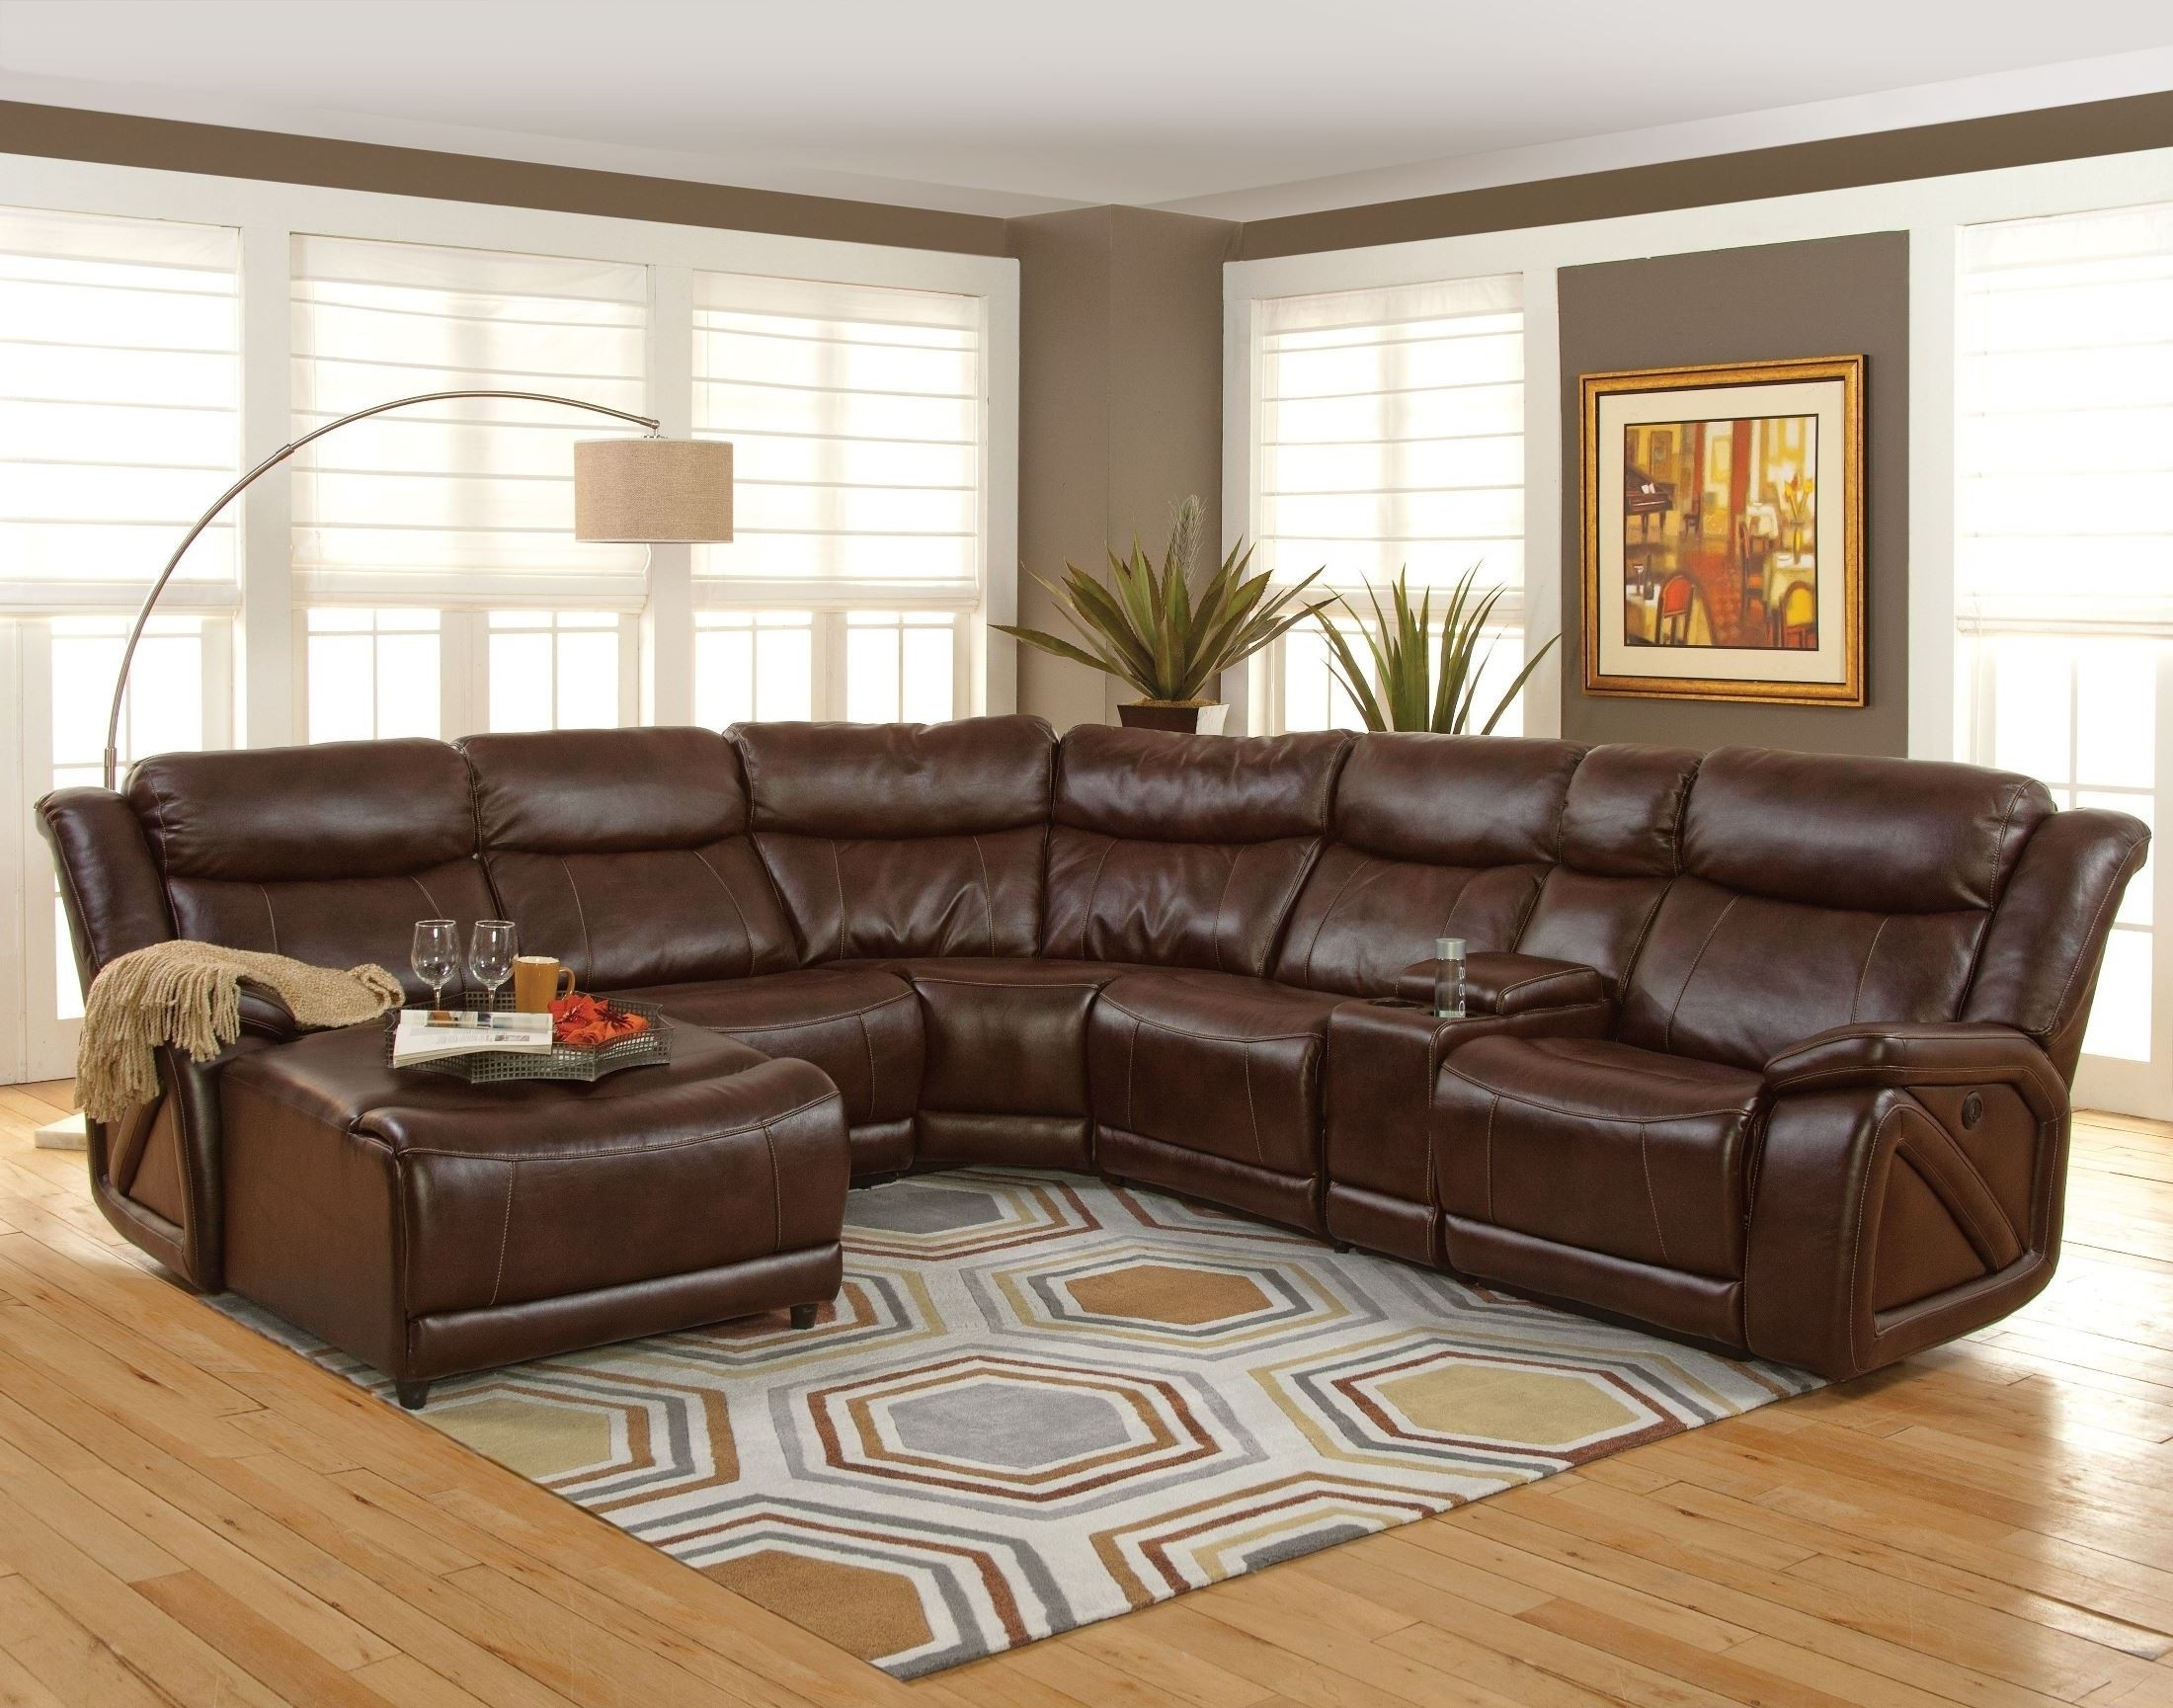 Park Place Premier Brown Laf Sectional From New Classics (20-225-17L with regard to Turdur 2 Piece Sectionals With Laf Loveseat (Image 19 of 30)